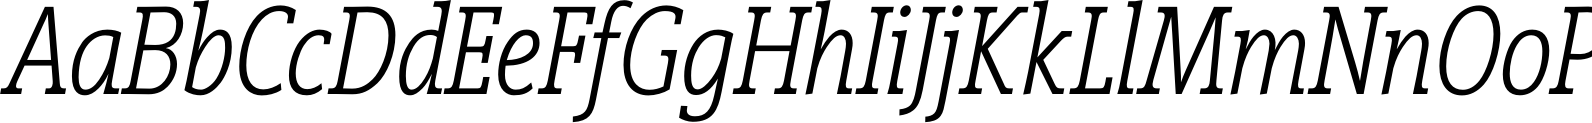 Vigor DT Condensed LightItalic